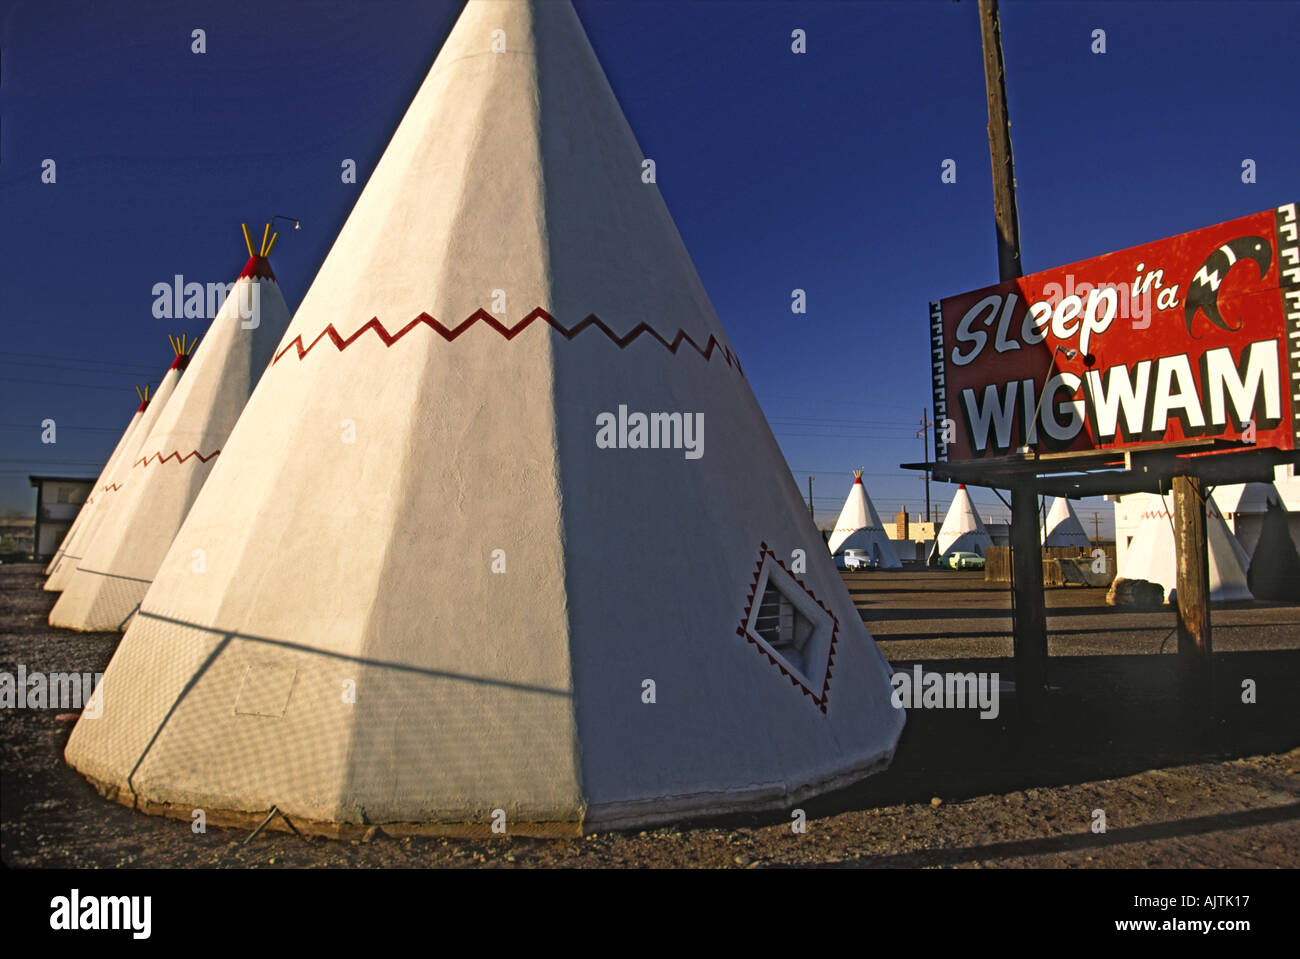 Concrete Rooms Teepee Shaped Concrete Rooms At Wigwam Motel On Route 66 In